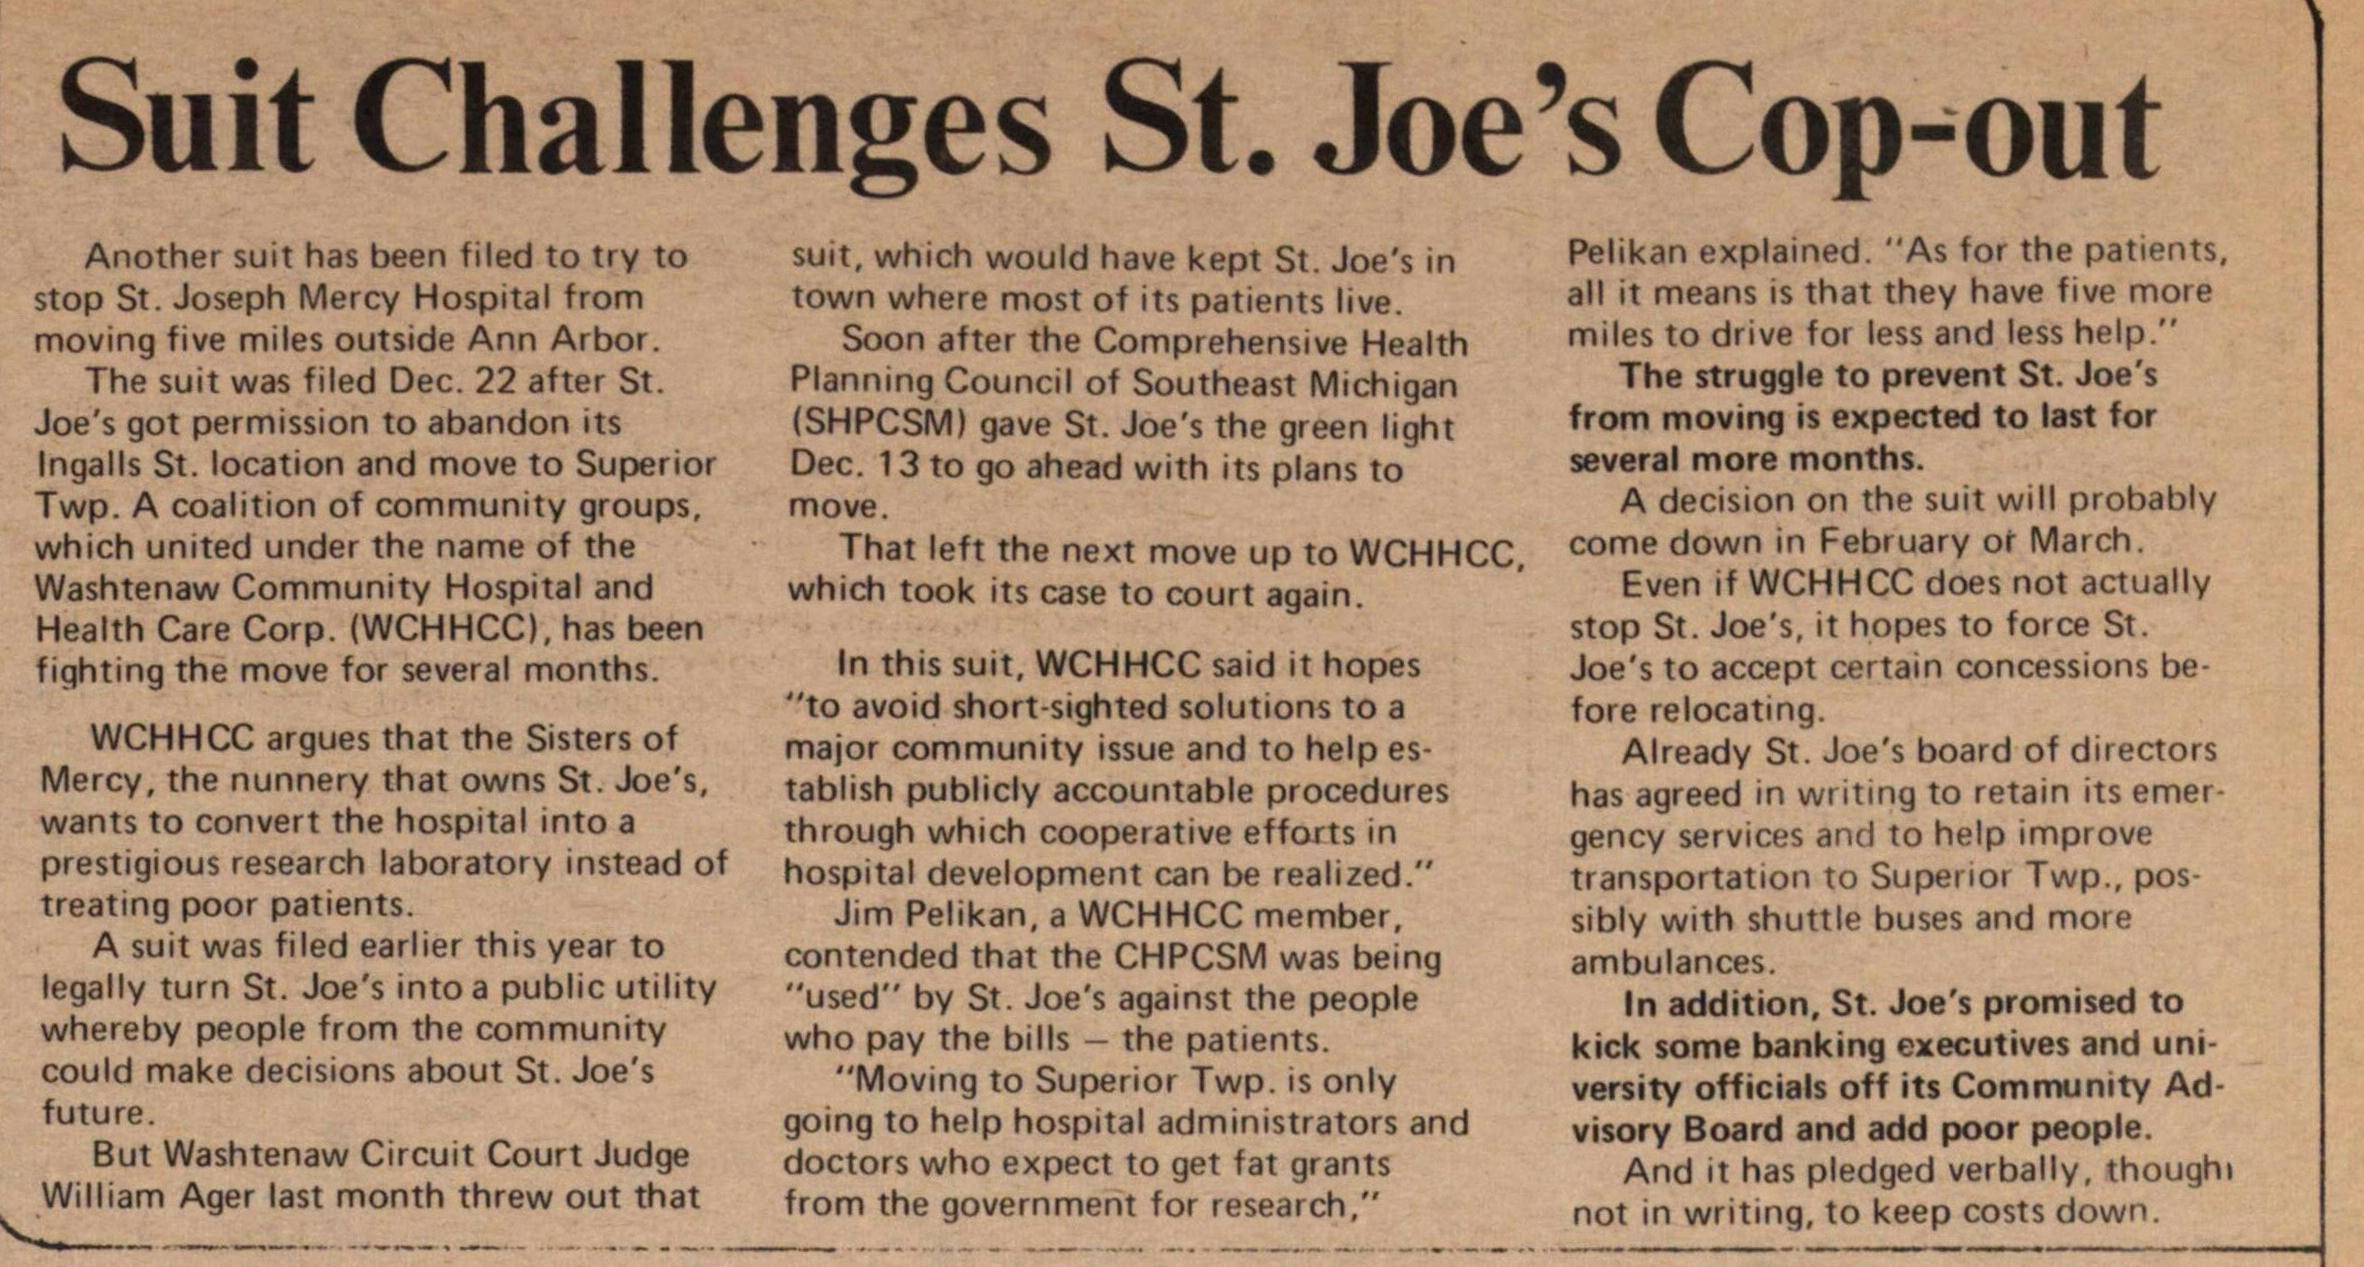 Suit Challenges St. Joe's Cop-out image